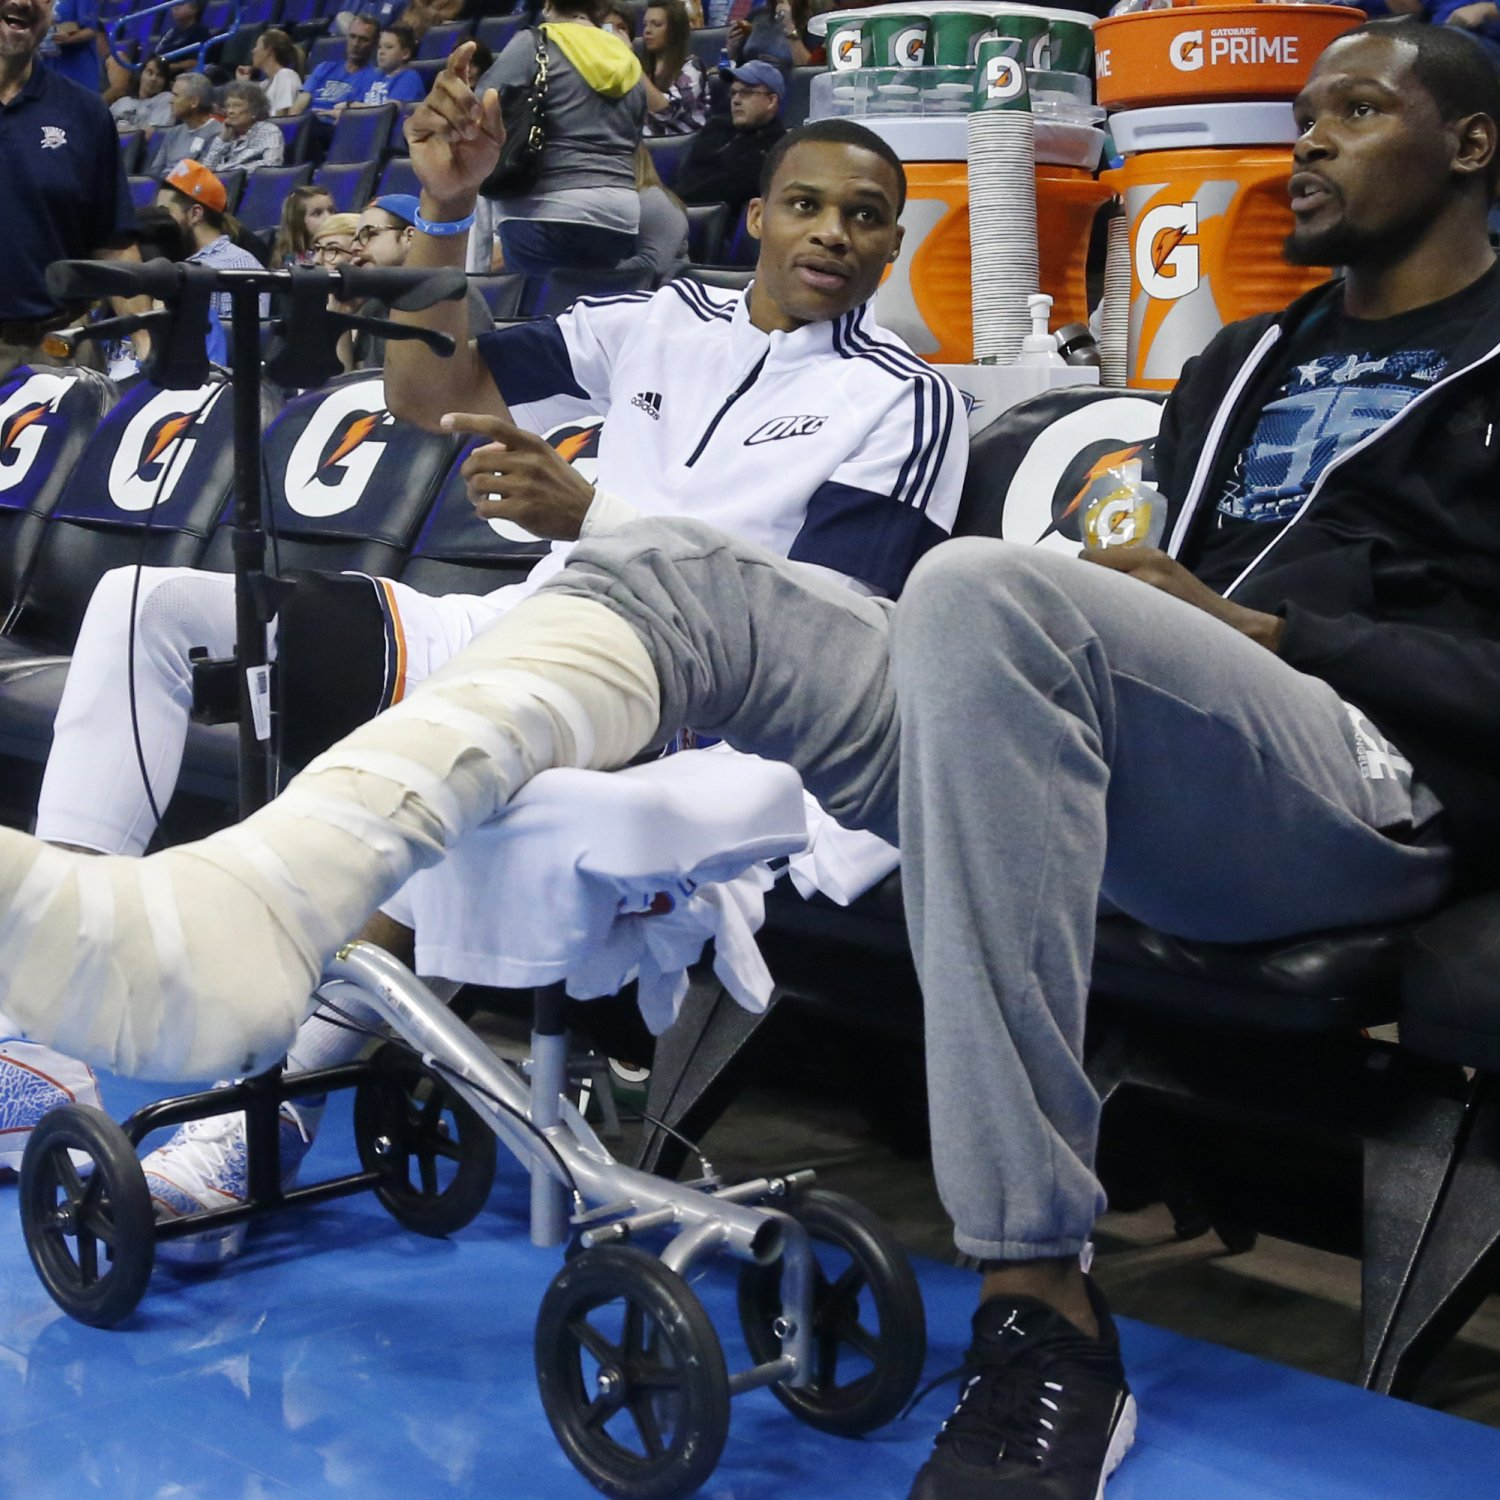 Latest News Updates: Kevin Durant Injury Update: Latest News And Comments On